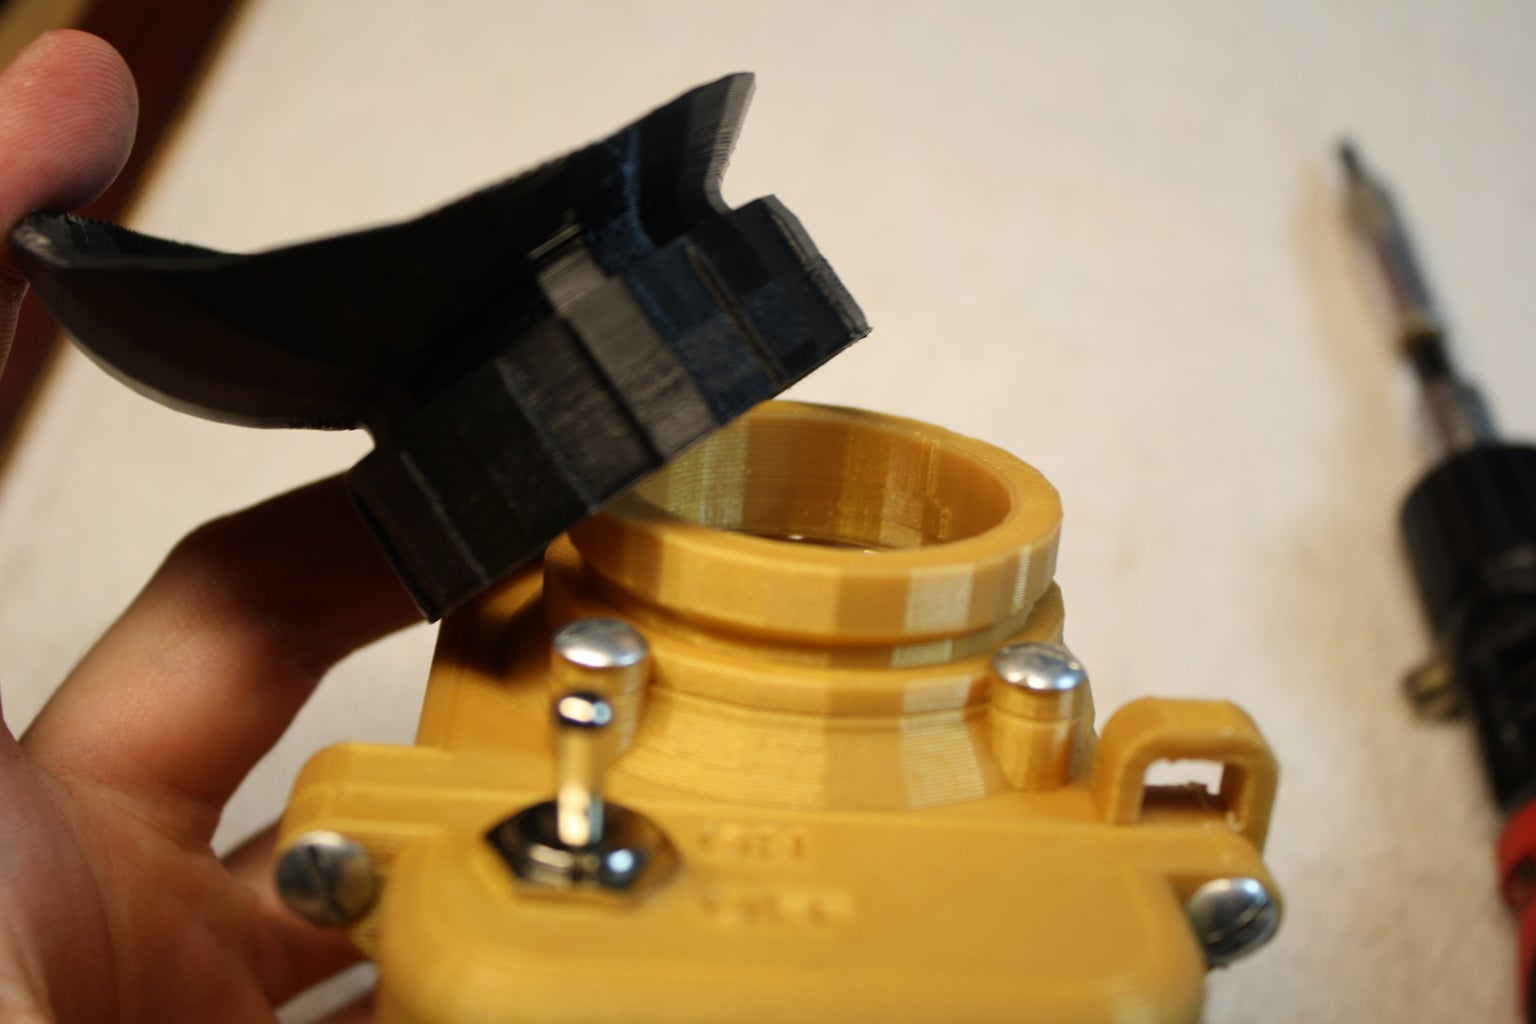 Installing the Eyepiece Lens